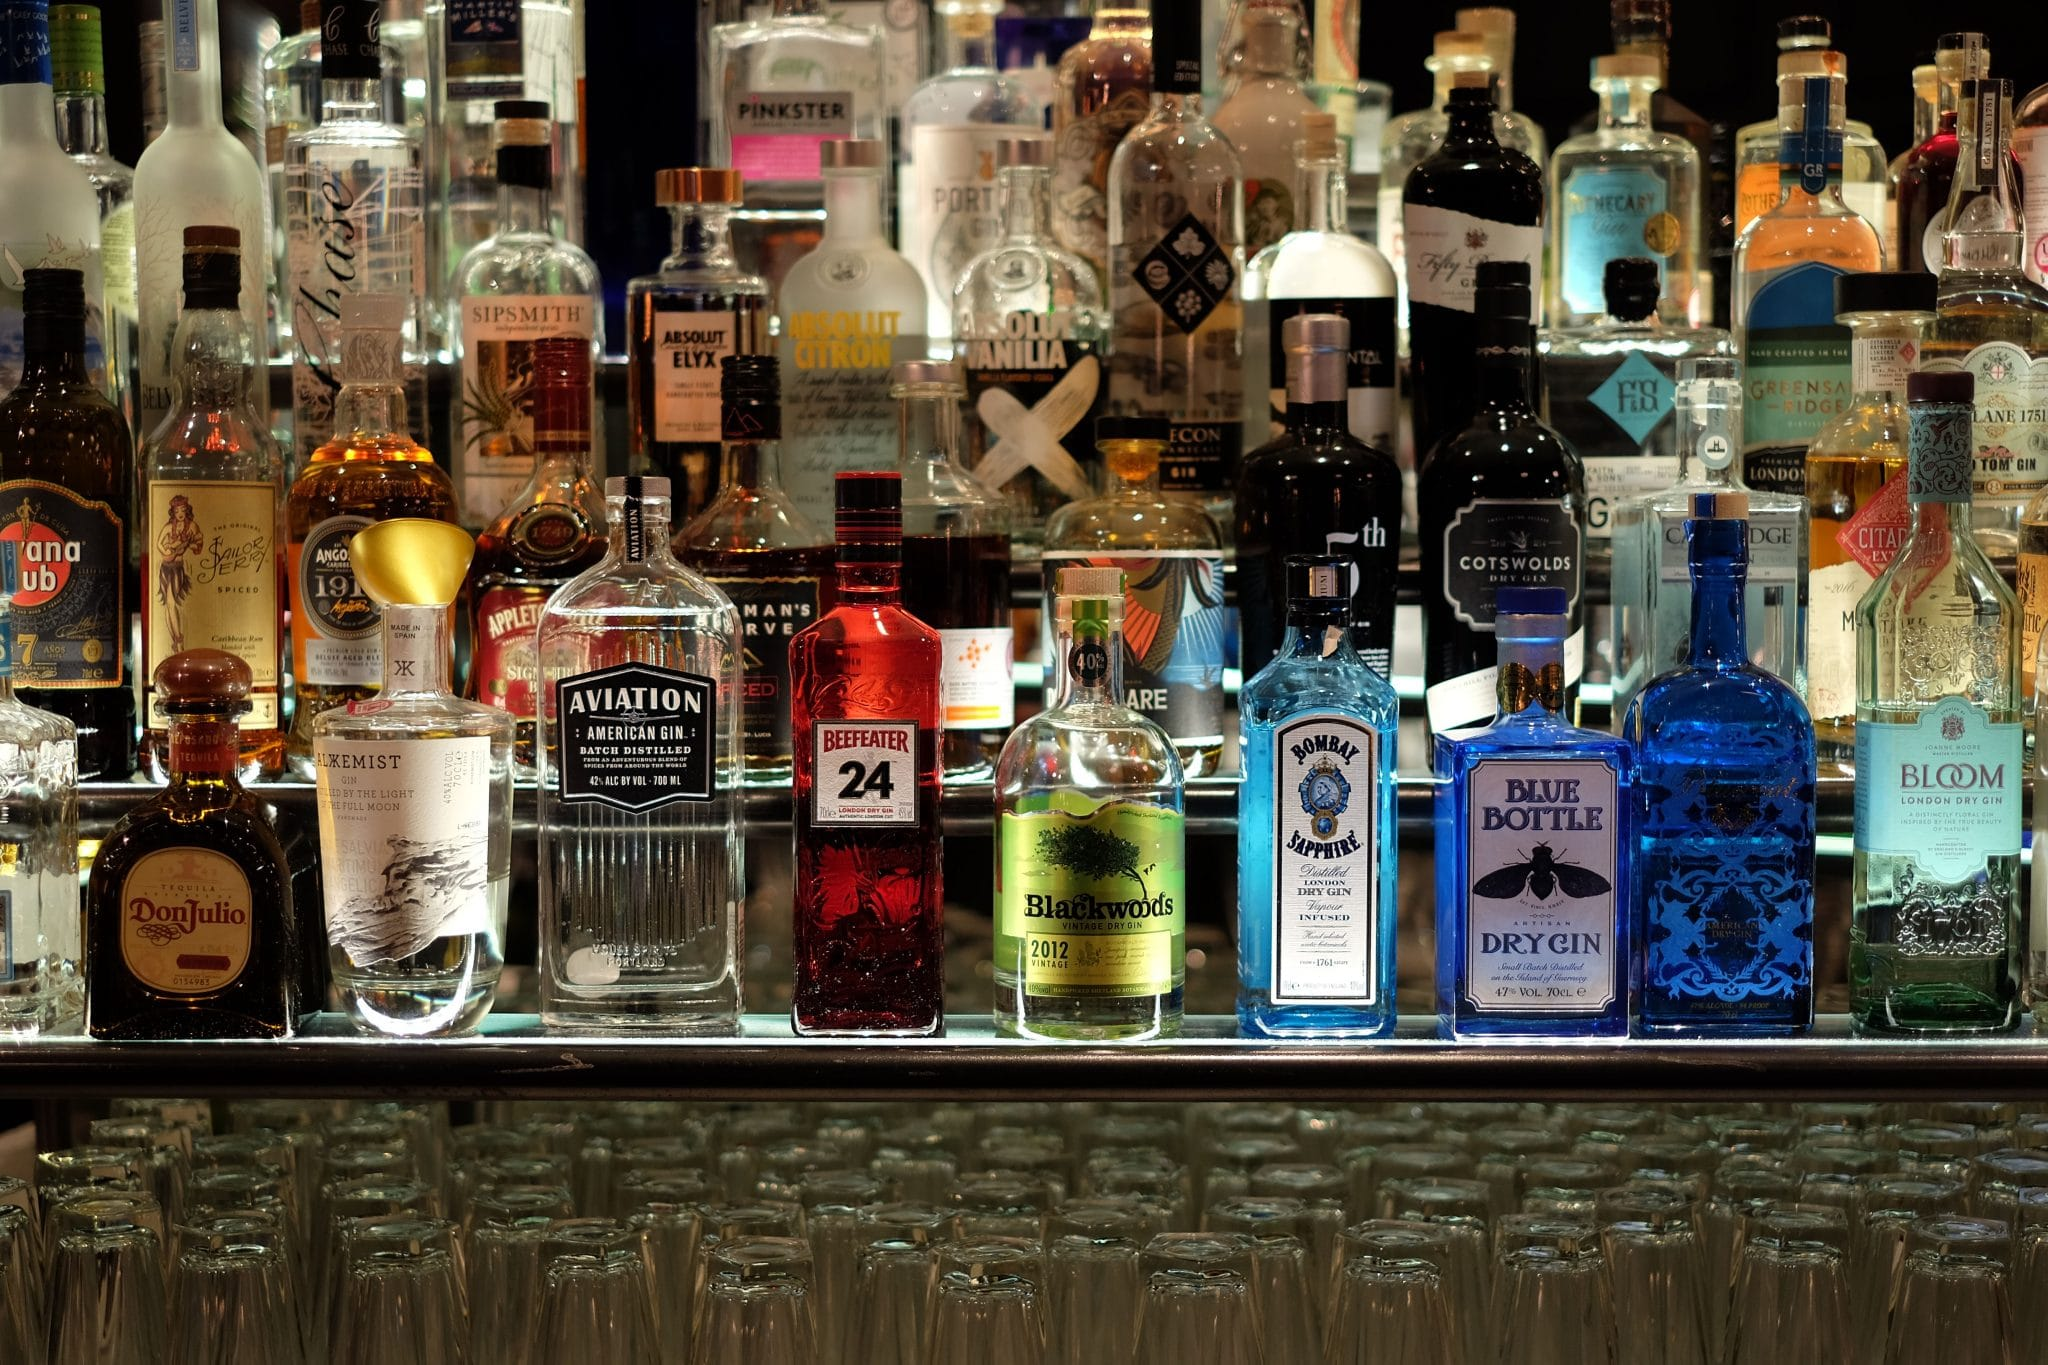 Gin hotel bar with 100 different gins